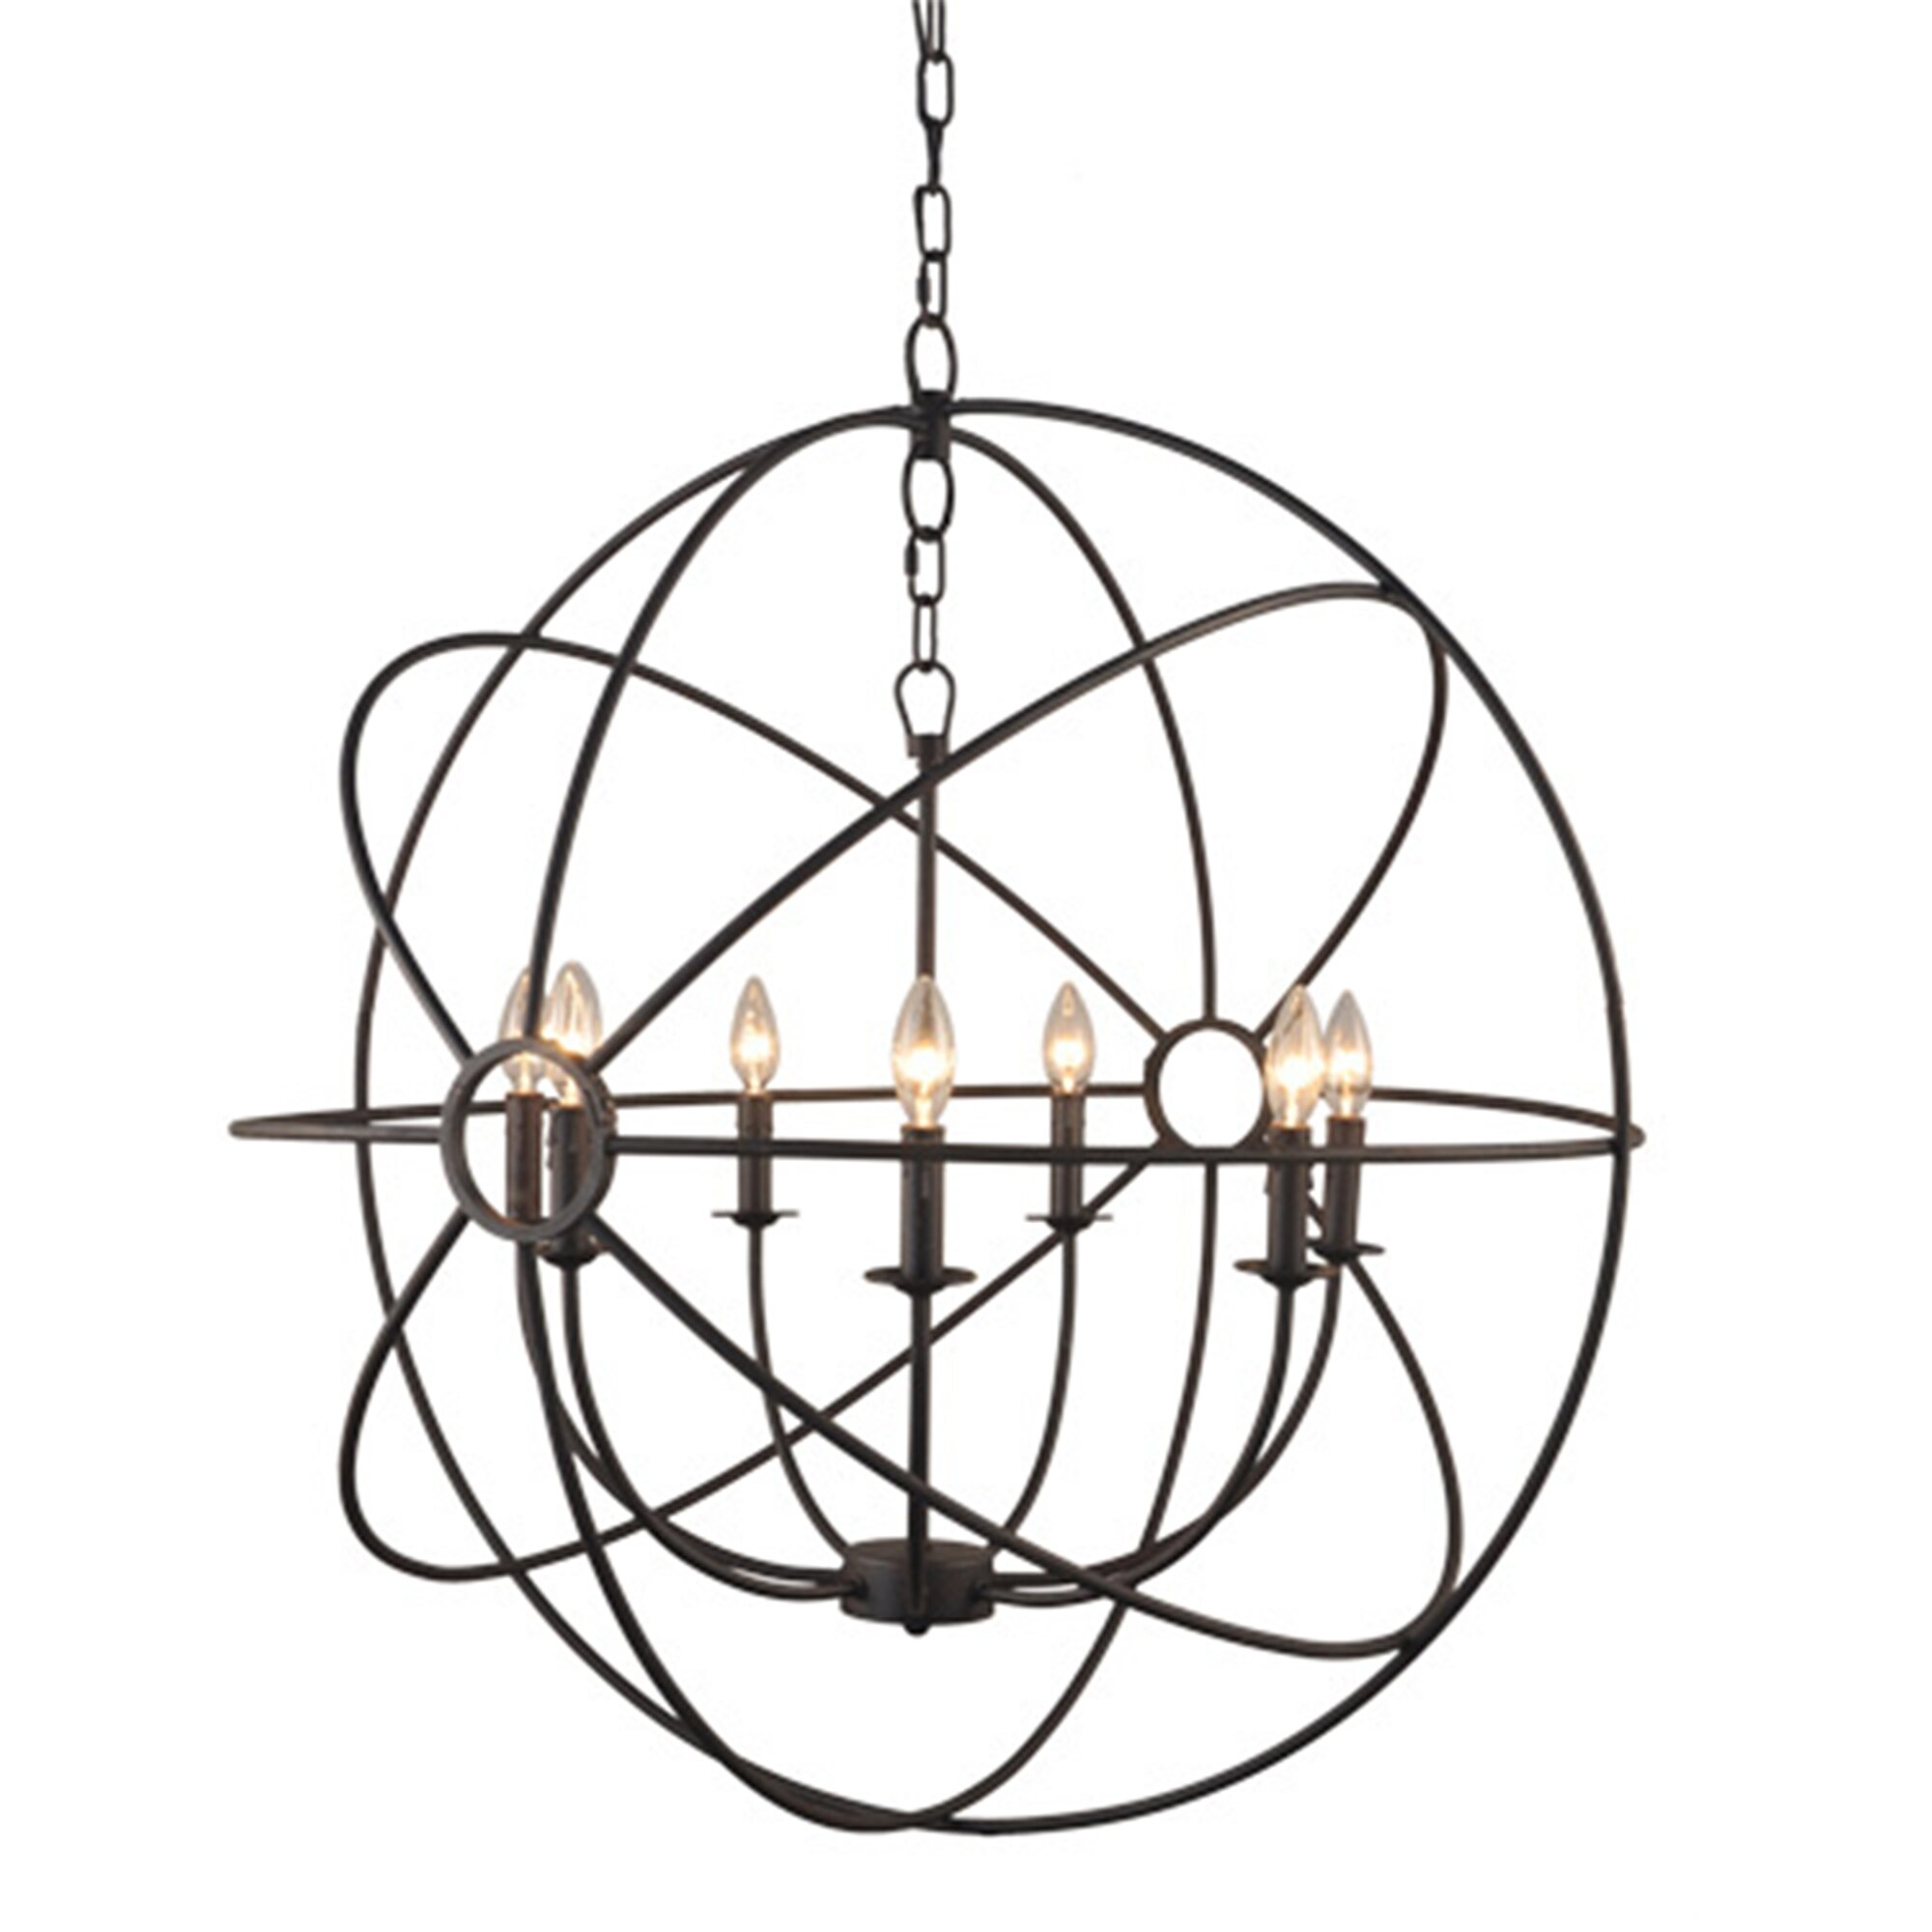 Infinity+7 Light+Globe+Pendant diagram collection gfci wiring schematic more maps, diagram and,20 Amp Plug For 120vac Wiring Diagram